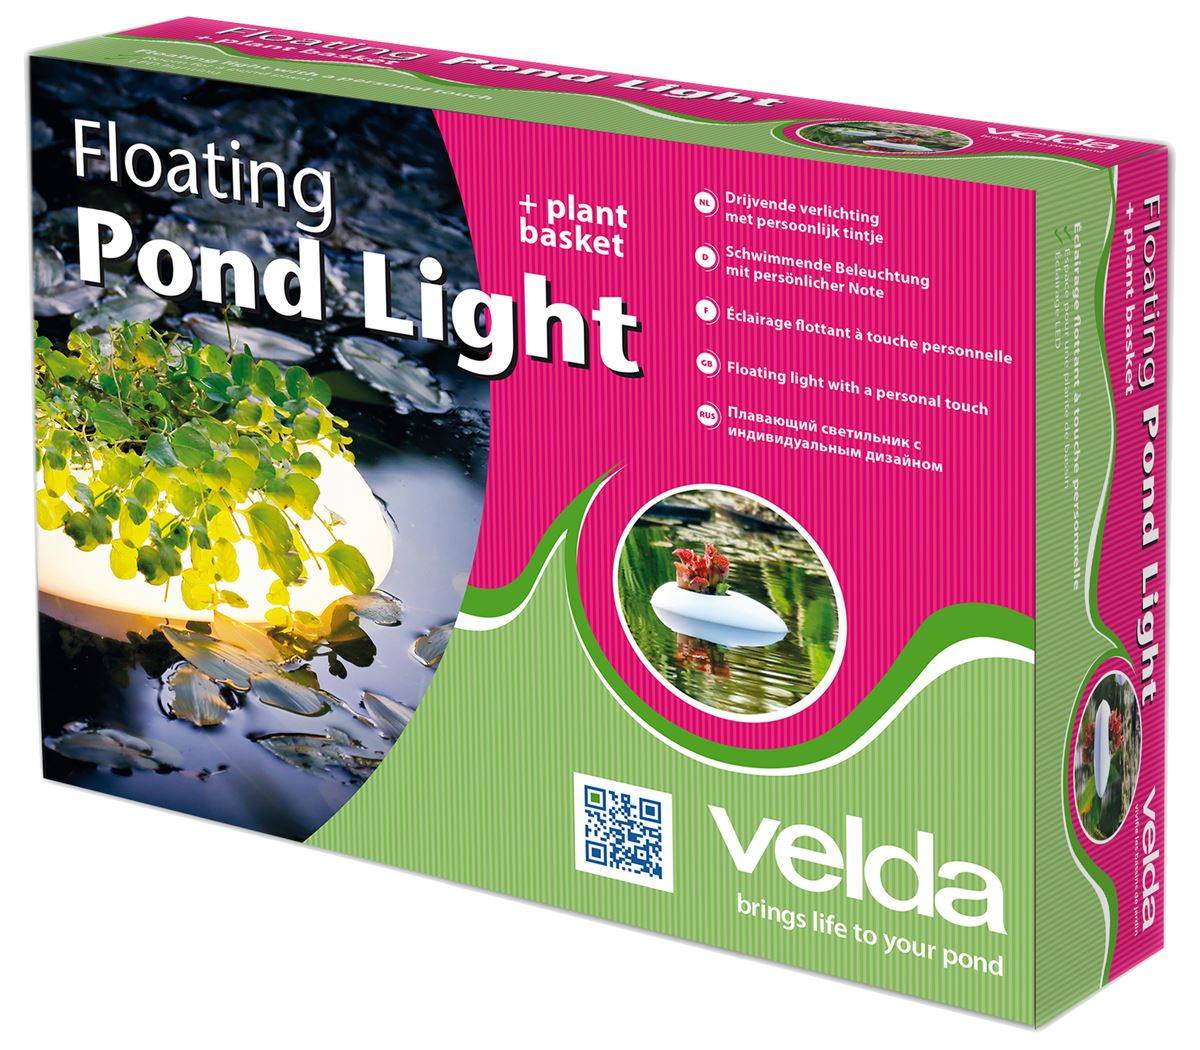 Floating Pond Light